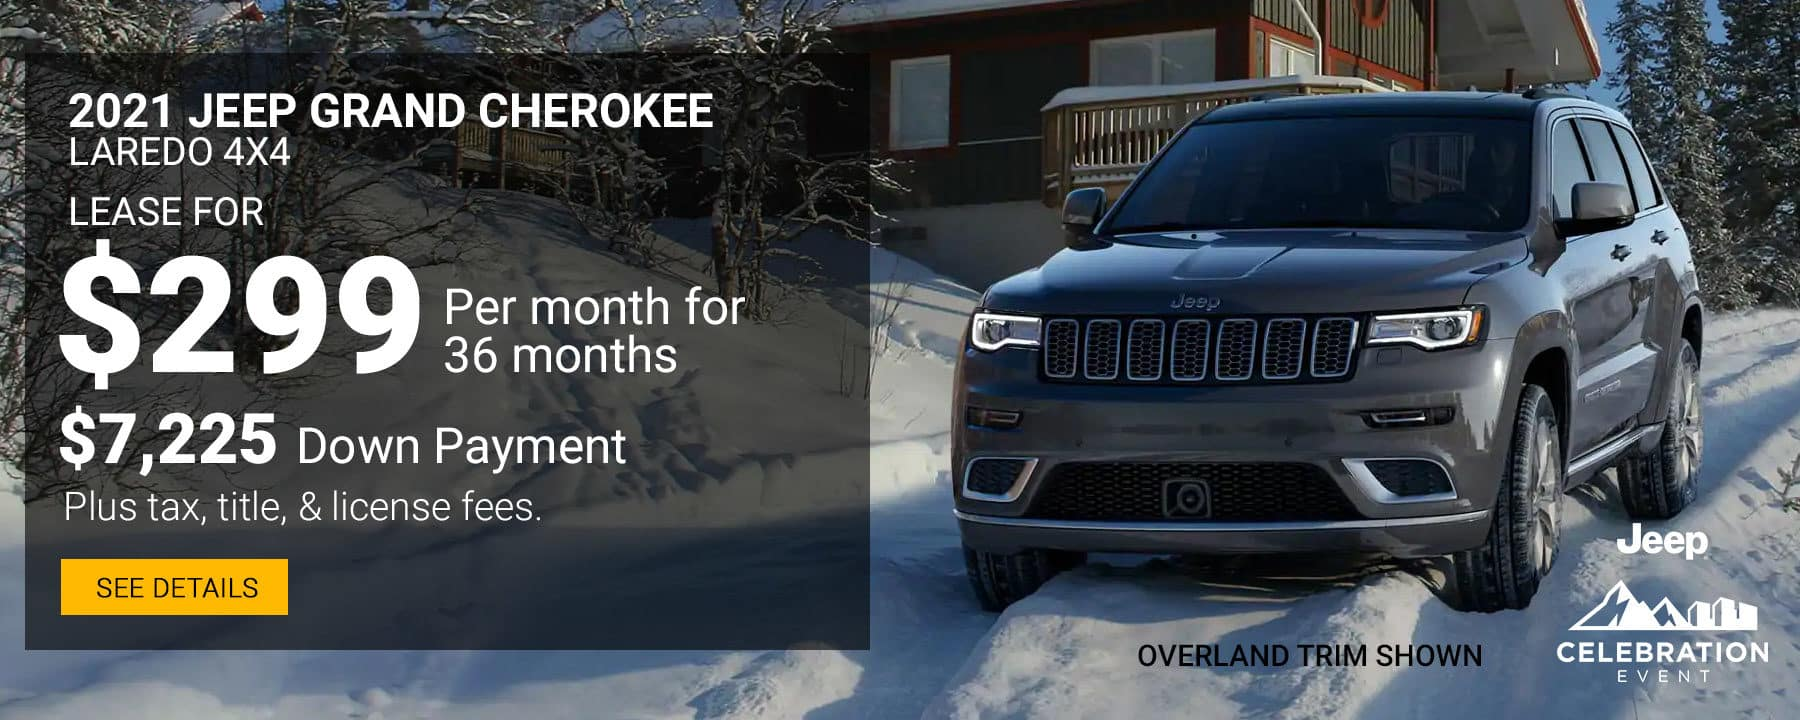 During the Jeep Celebration Event, Lease a 2021 Jeep Grand Cherokee Laredo 4X4 for $299 per month with $7,225 down.